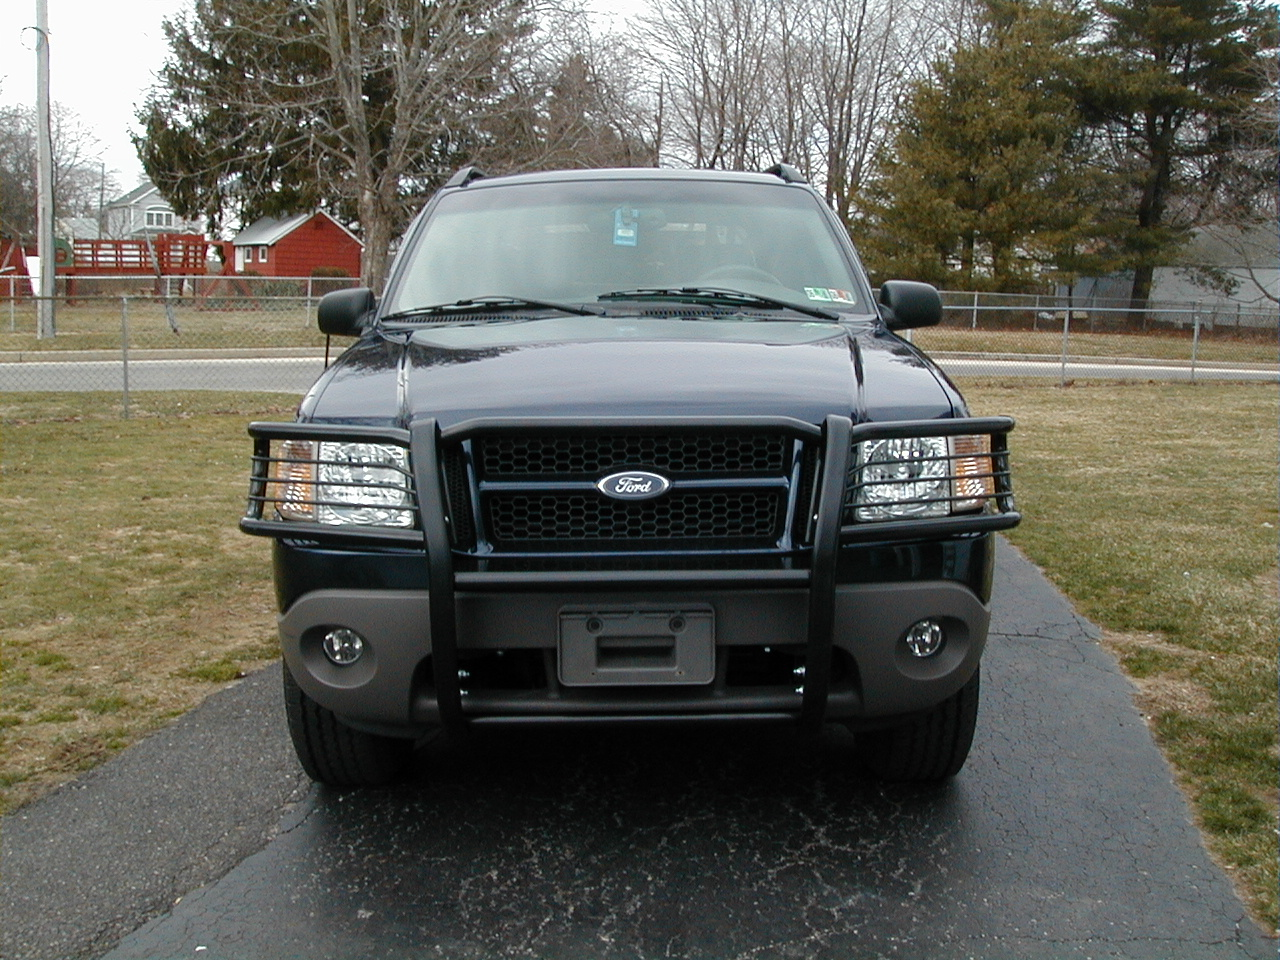 2002 ford explorer sport body lift. Black Bedroom Furniture Sets. Home Design Ideas